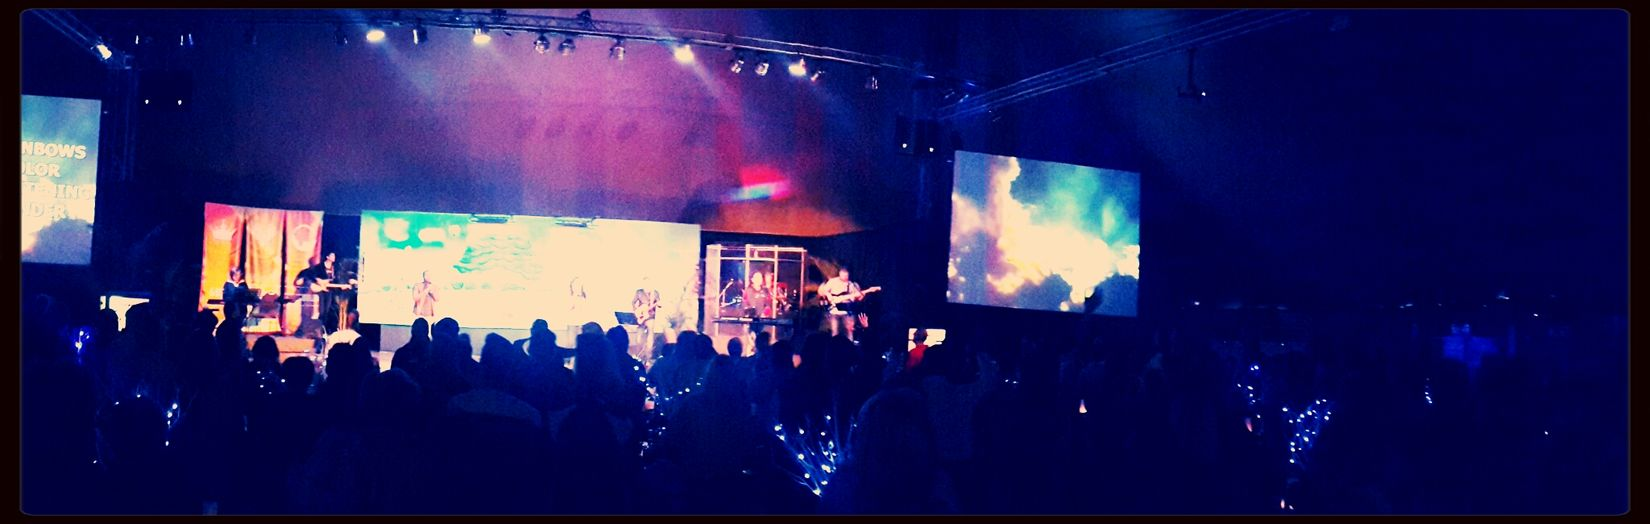 Precious Moments In Worship